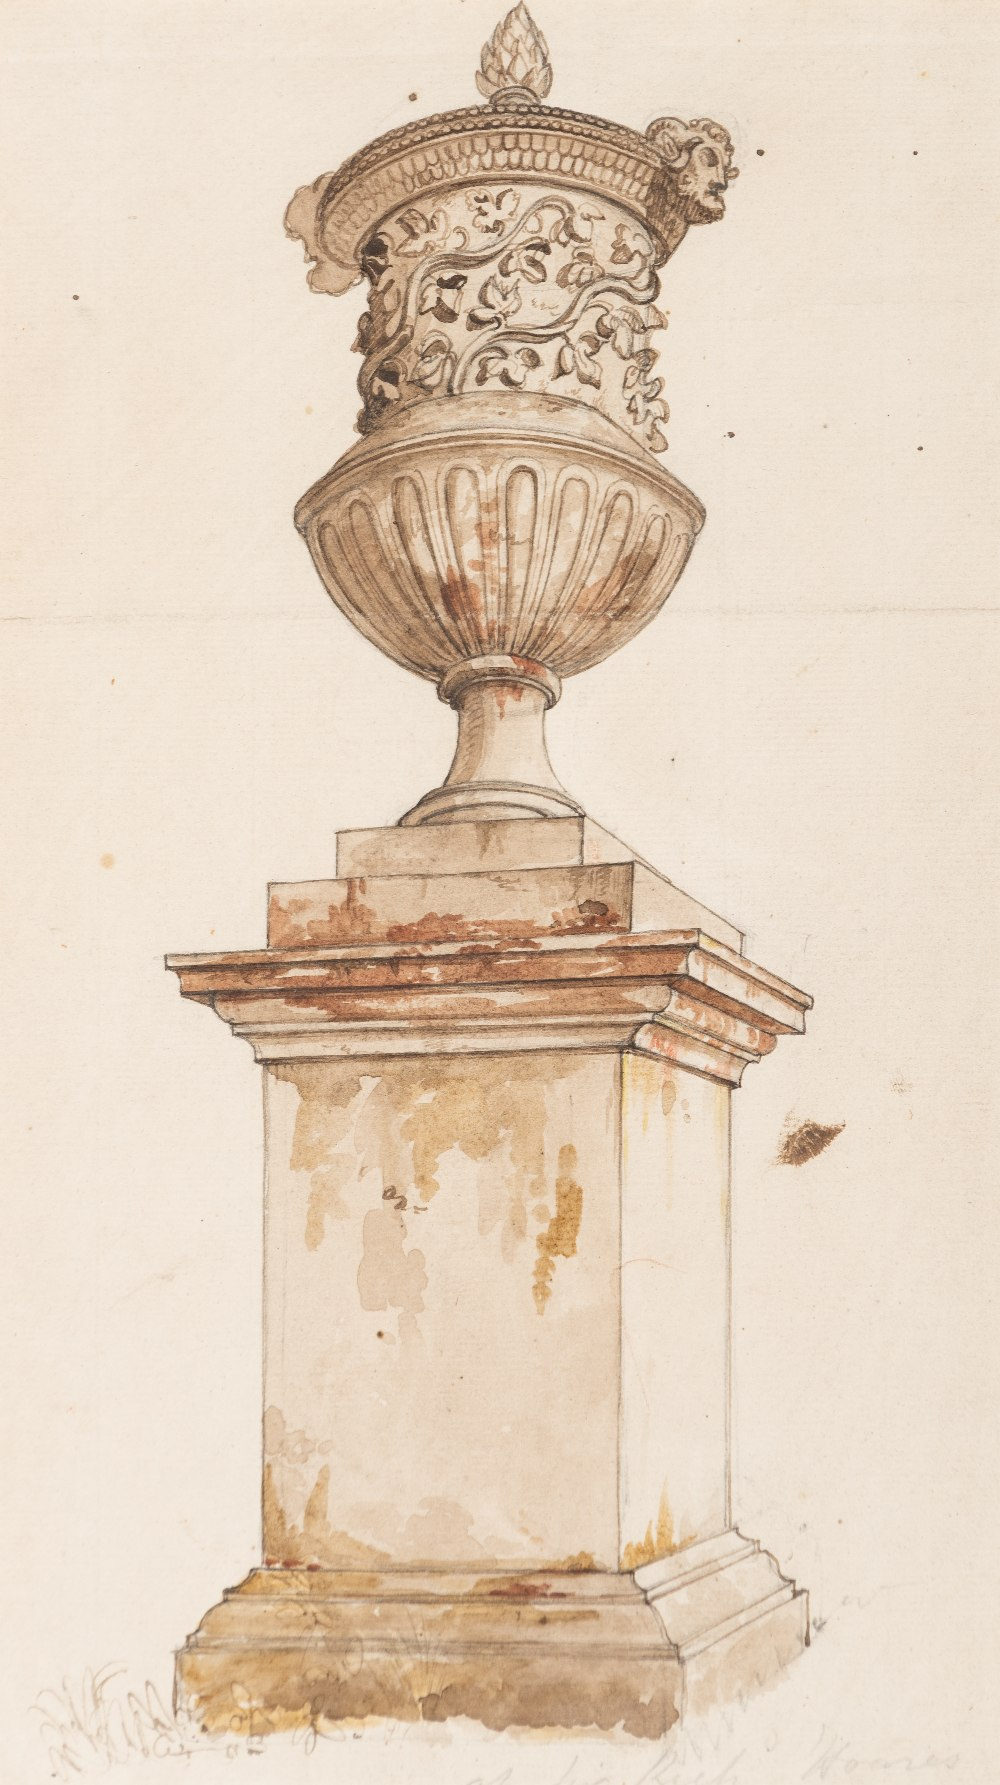 Lot 22 - SAMUEL WOODFORDE, R.A. (1764-1817) A VASE AT STOURHEAD pen & ink with coloured washes inscribed l.r.